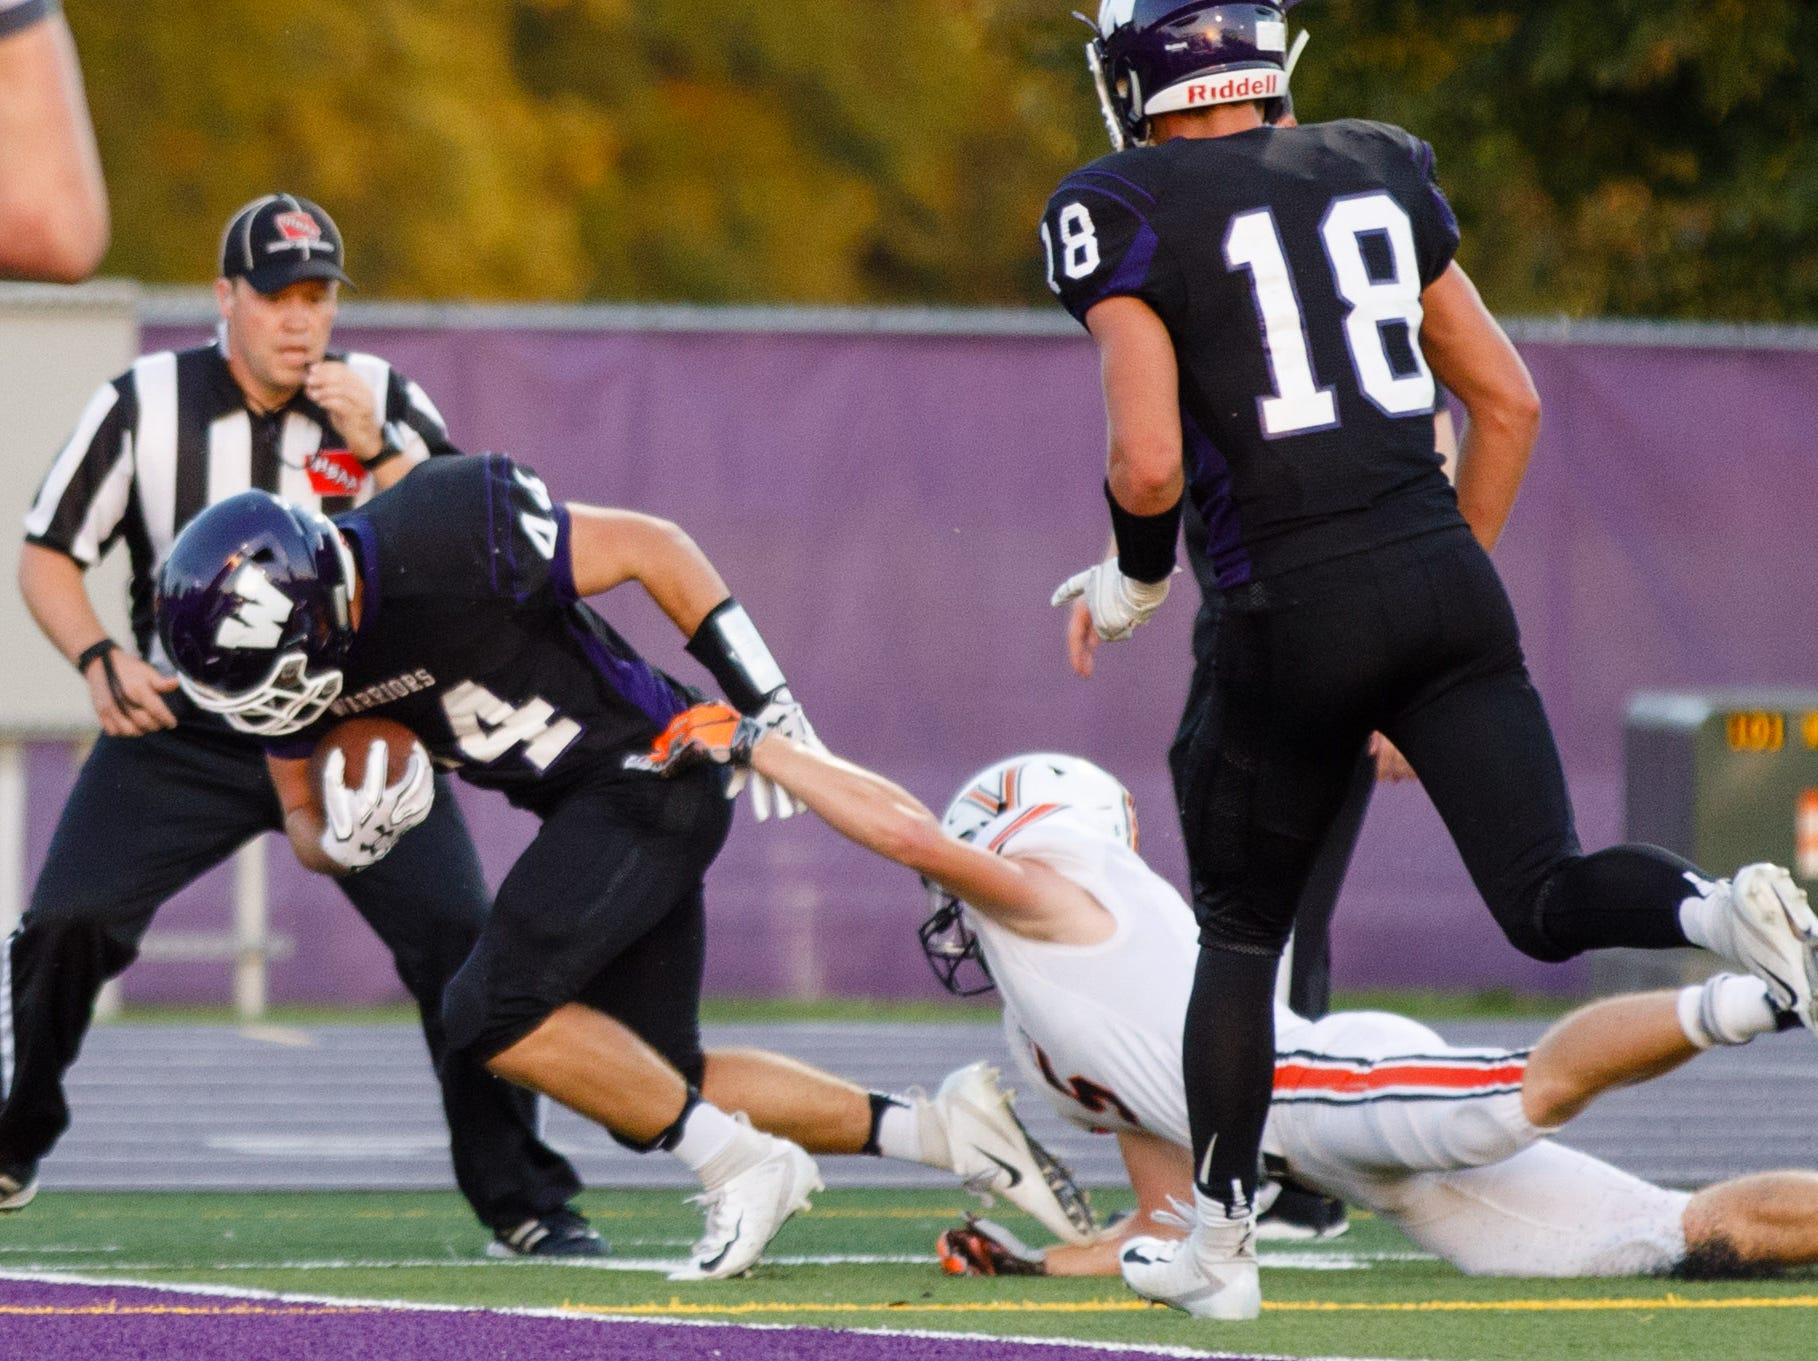 Waukee High School's Cole Romdall (44) punches in for a touchdown on Valley in the first quarter Friday, Sept. 14, 2018, at Waukee Stadium.